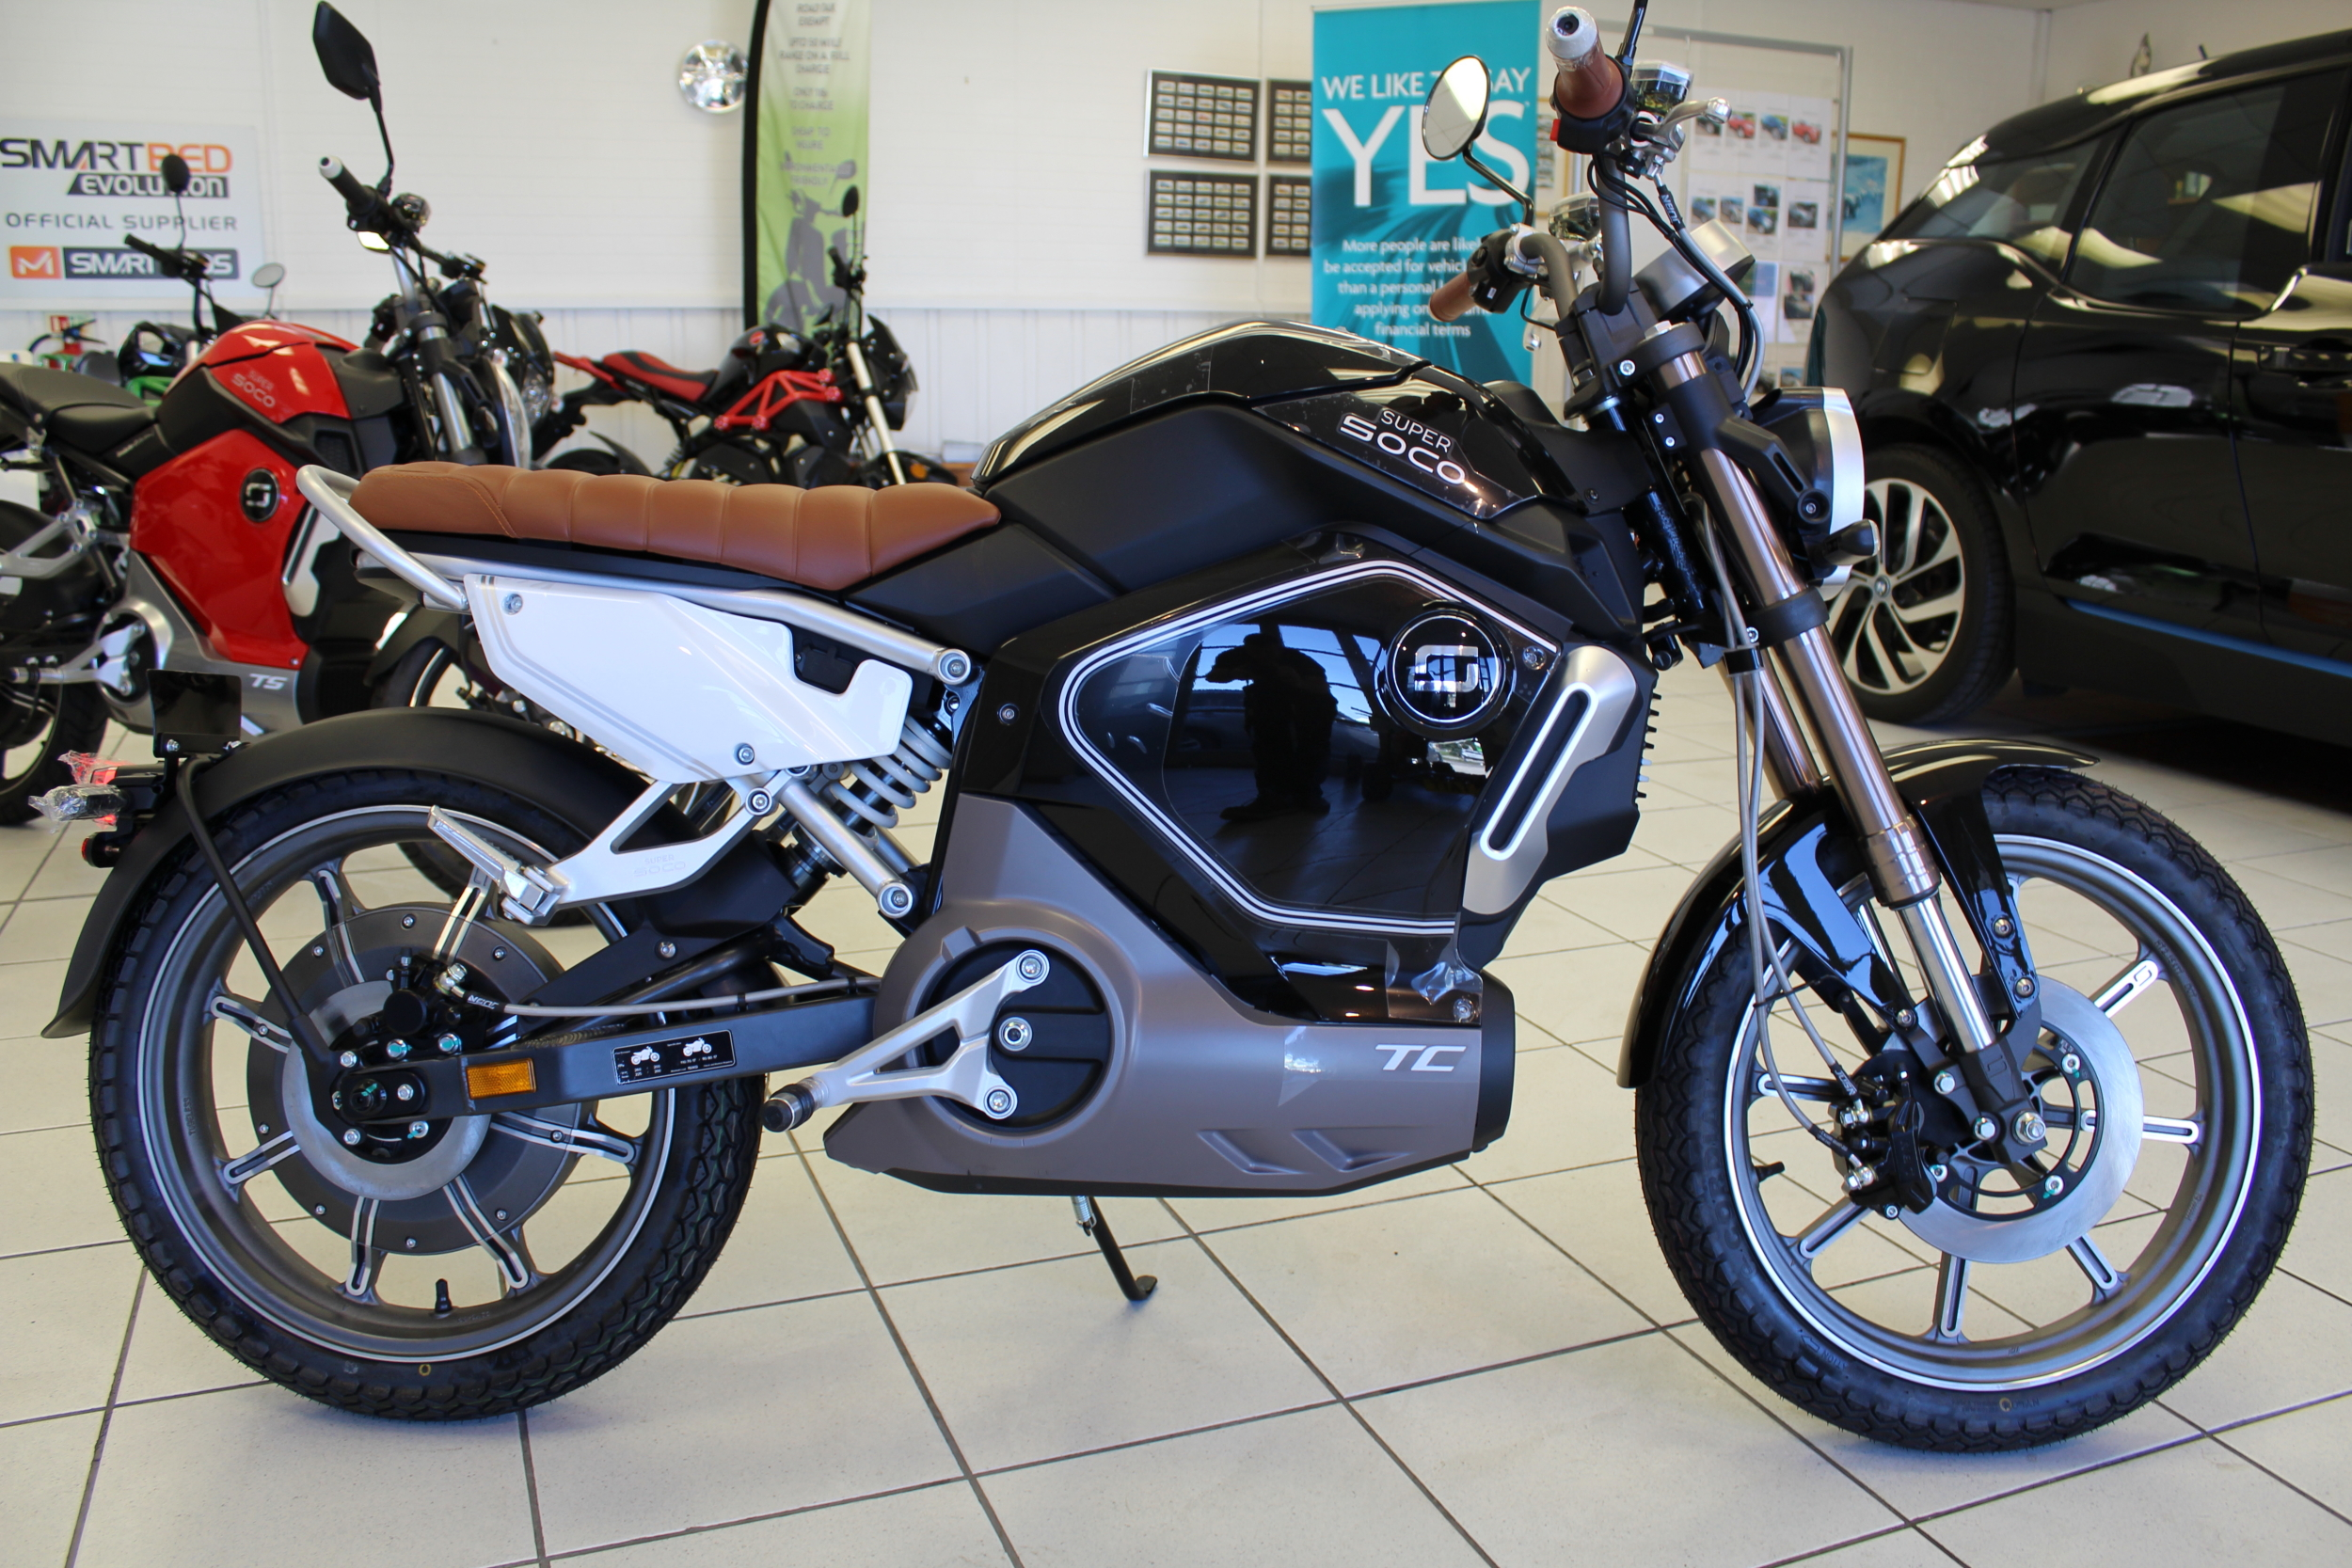 NEW Super Soco TC Electric Motorcycle - FREE DELIVERY WITHIN 100 MILES